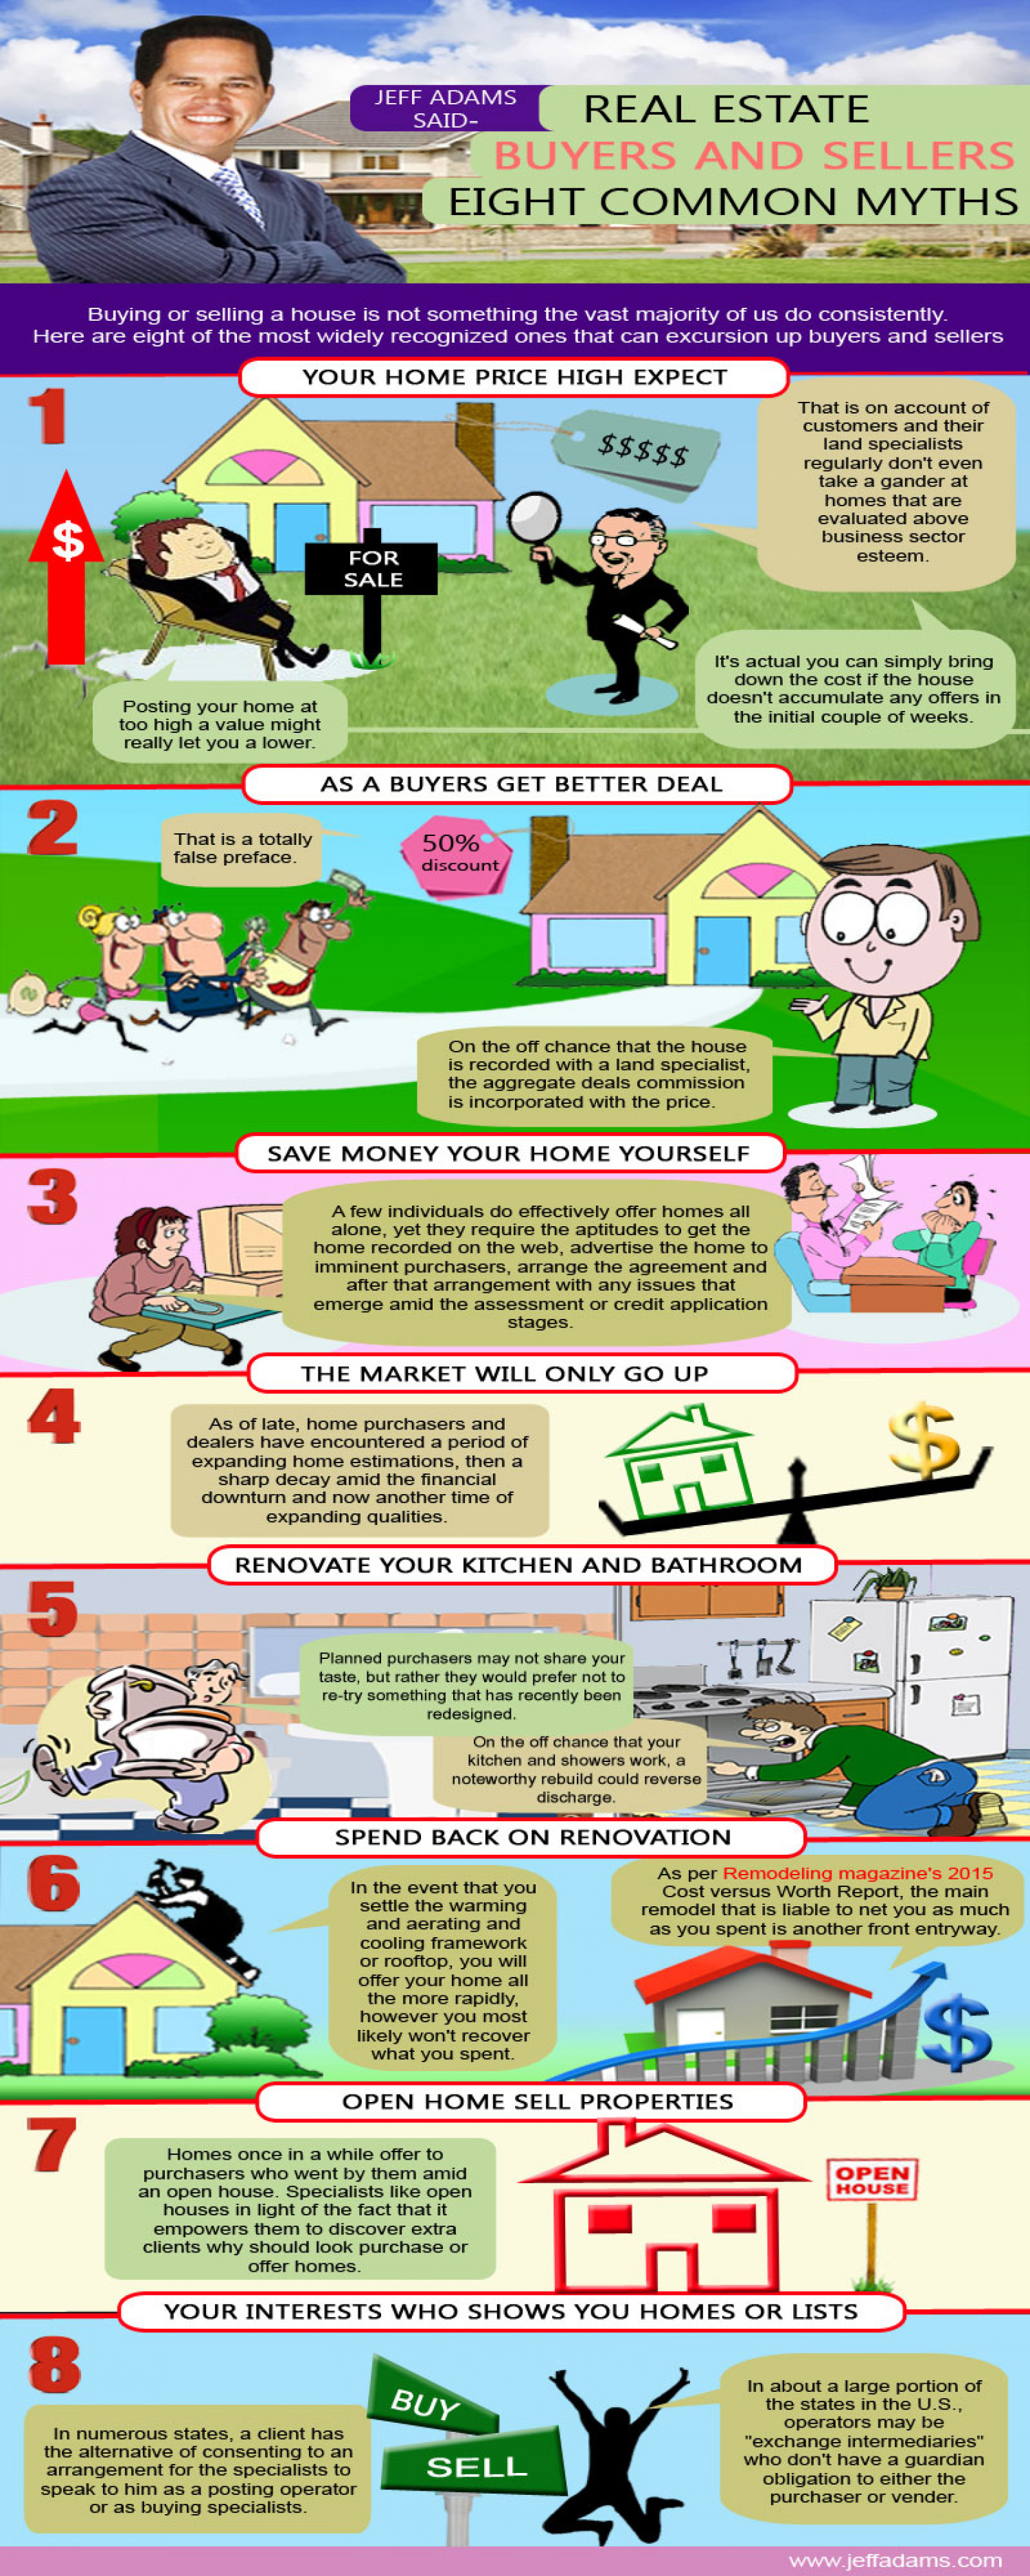 Jeff Adams Said- Real Estate Buyers and Sellers eight Common Myths Infographic